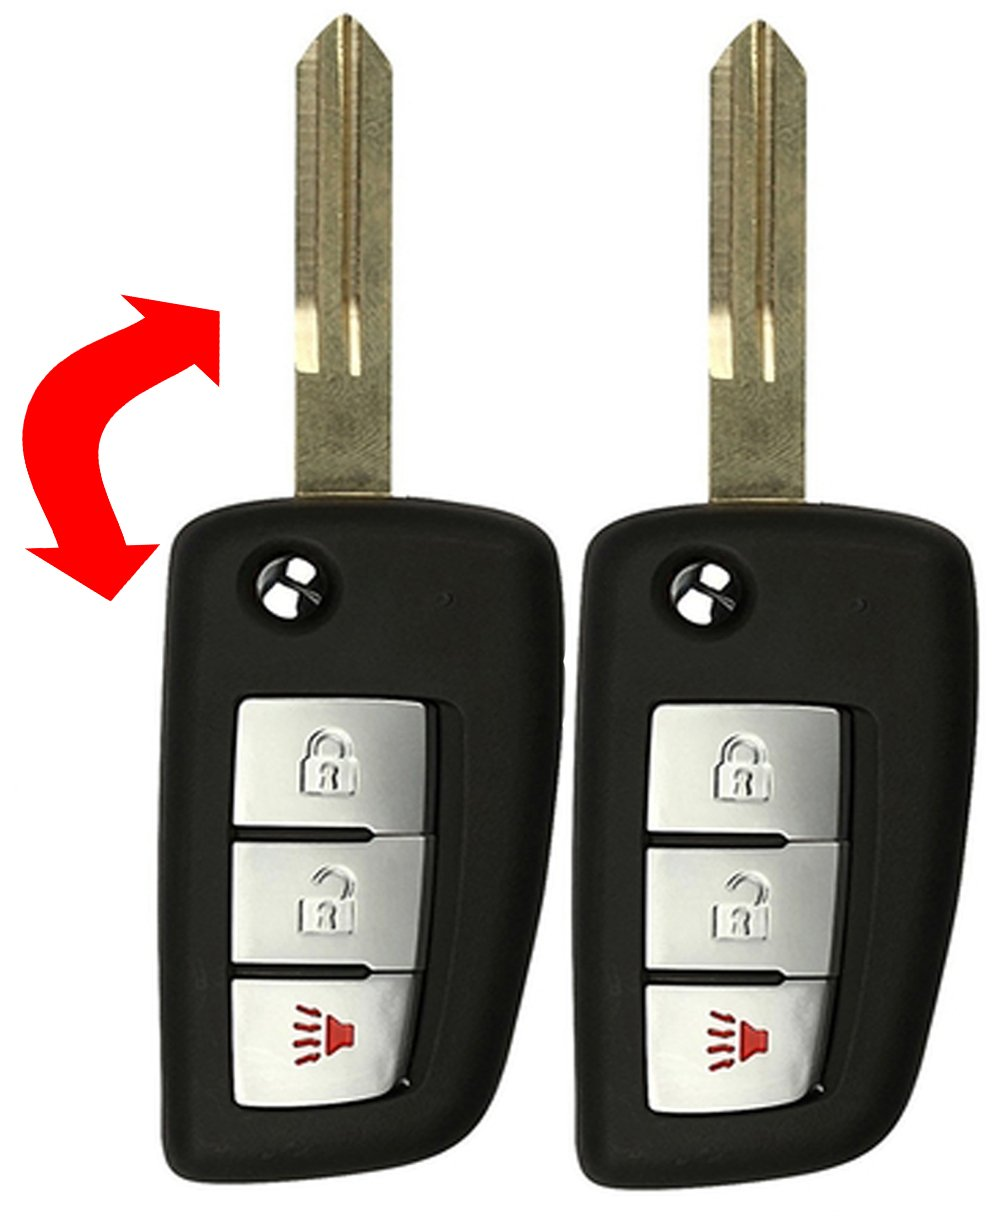 KeylessCanada © Upgraded 2 New Replacement Keyless Entry Remotes Control and 2 transponder Ignition Keys Fob For Nissan Infiniti KBRASTU15 N104T